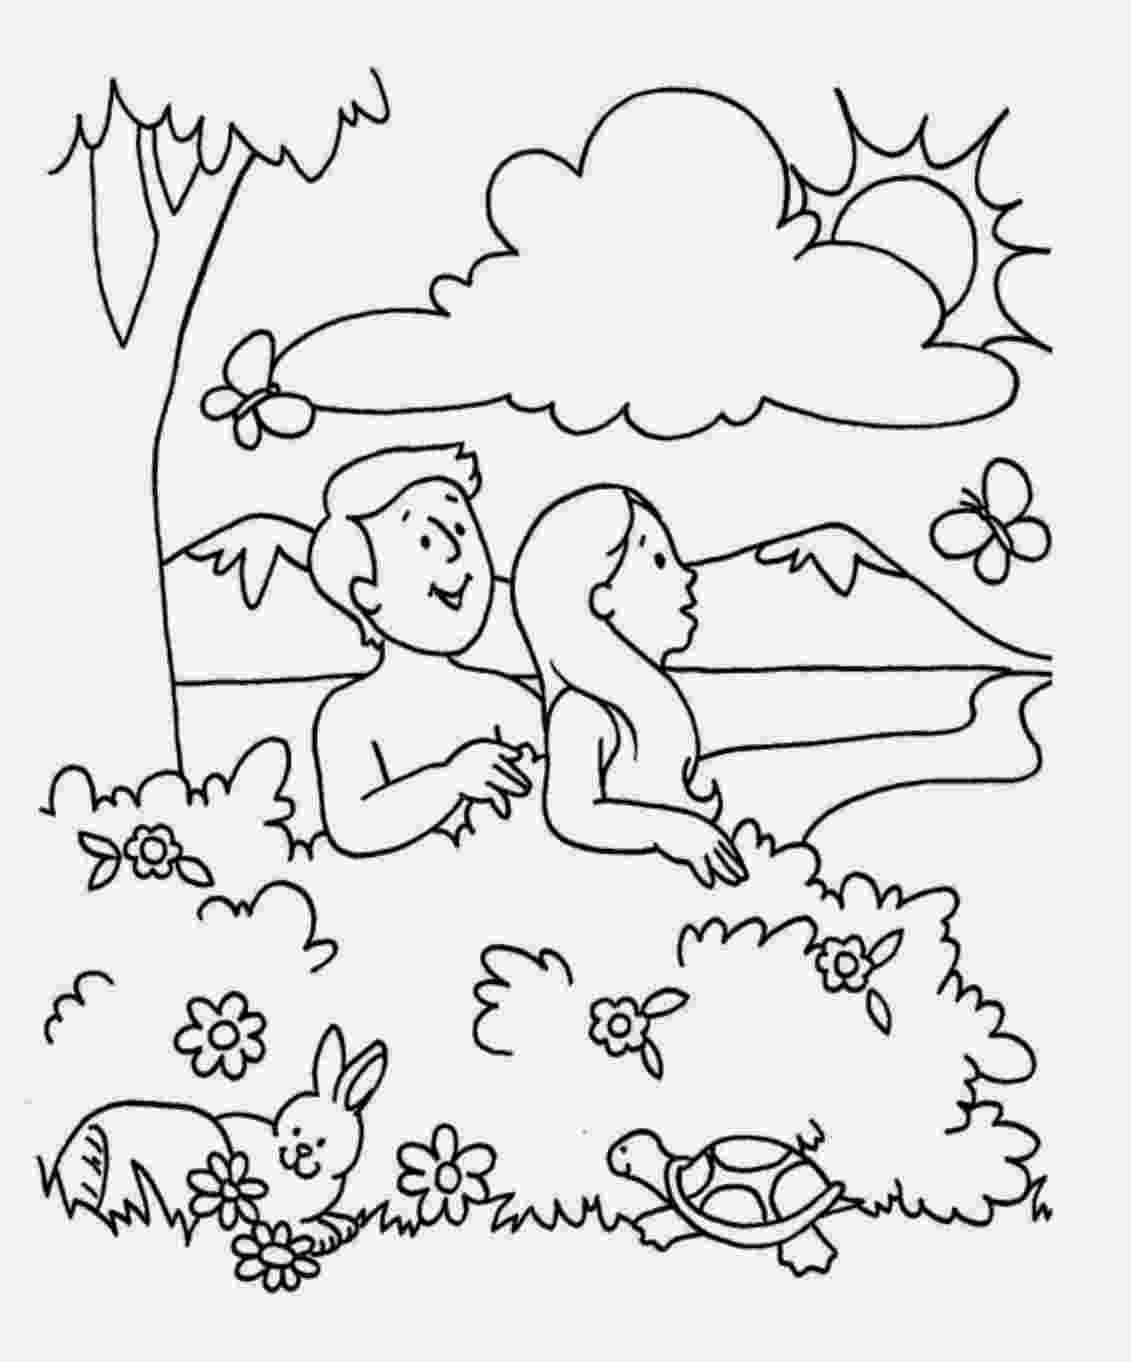 adam and eve coloring pages pin by carly hobbs on pre k adam eve bible preschool pages adam eve coloring and